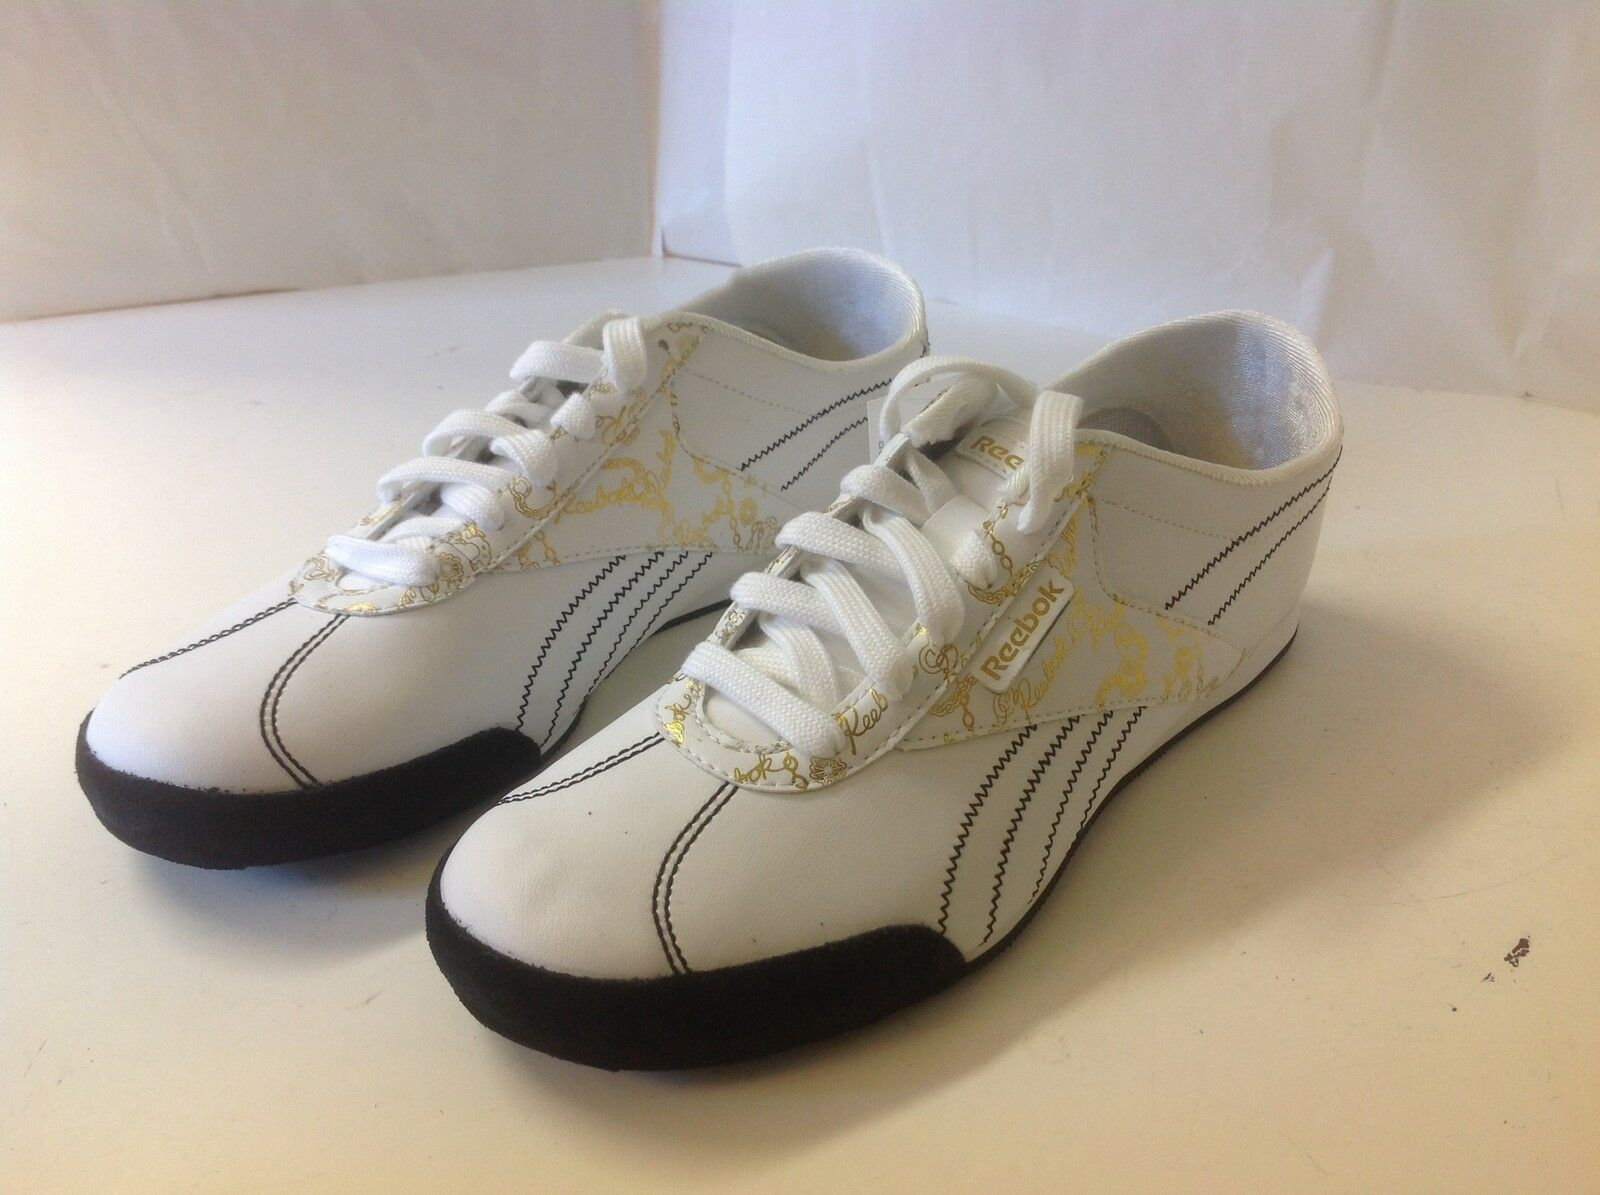 REEBOK Temptra Spyce Pack White Leather Casual 9 1/2 M Shoe New Black Gold Trim